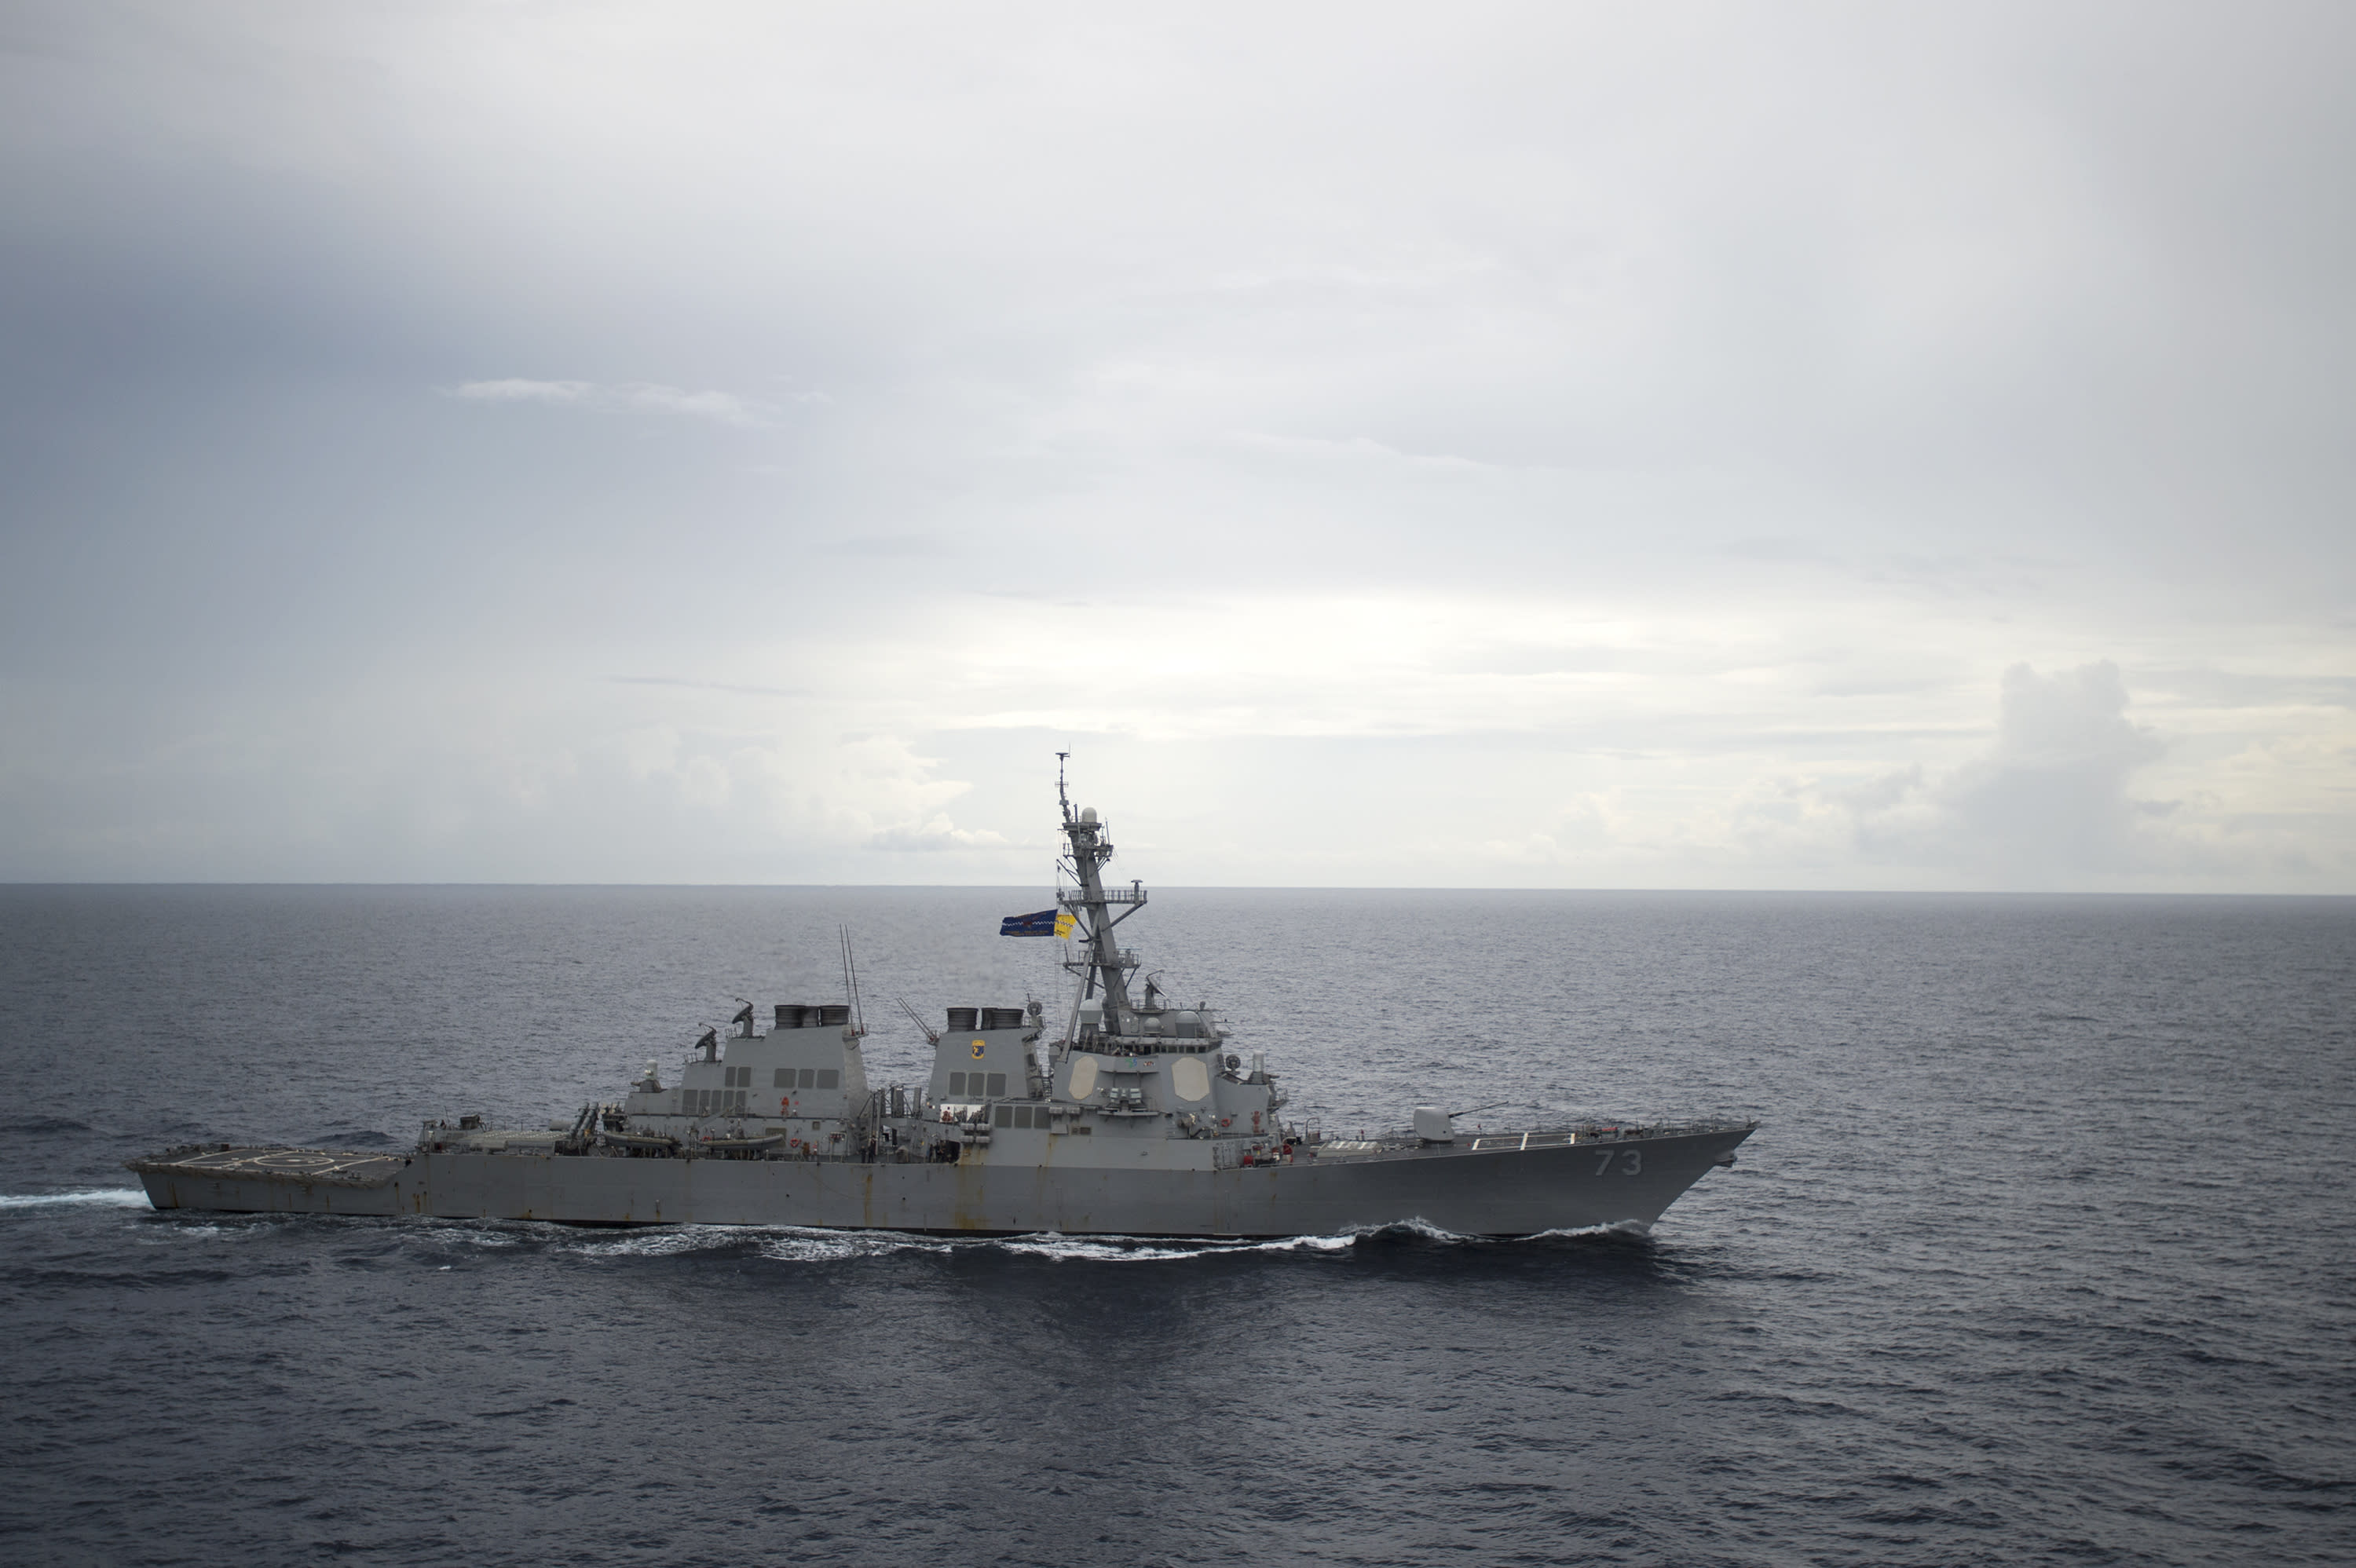 'Aggressive' Chinese Warship Forces American Destroyer to Change Course